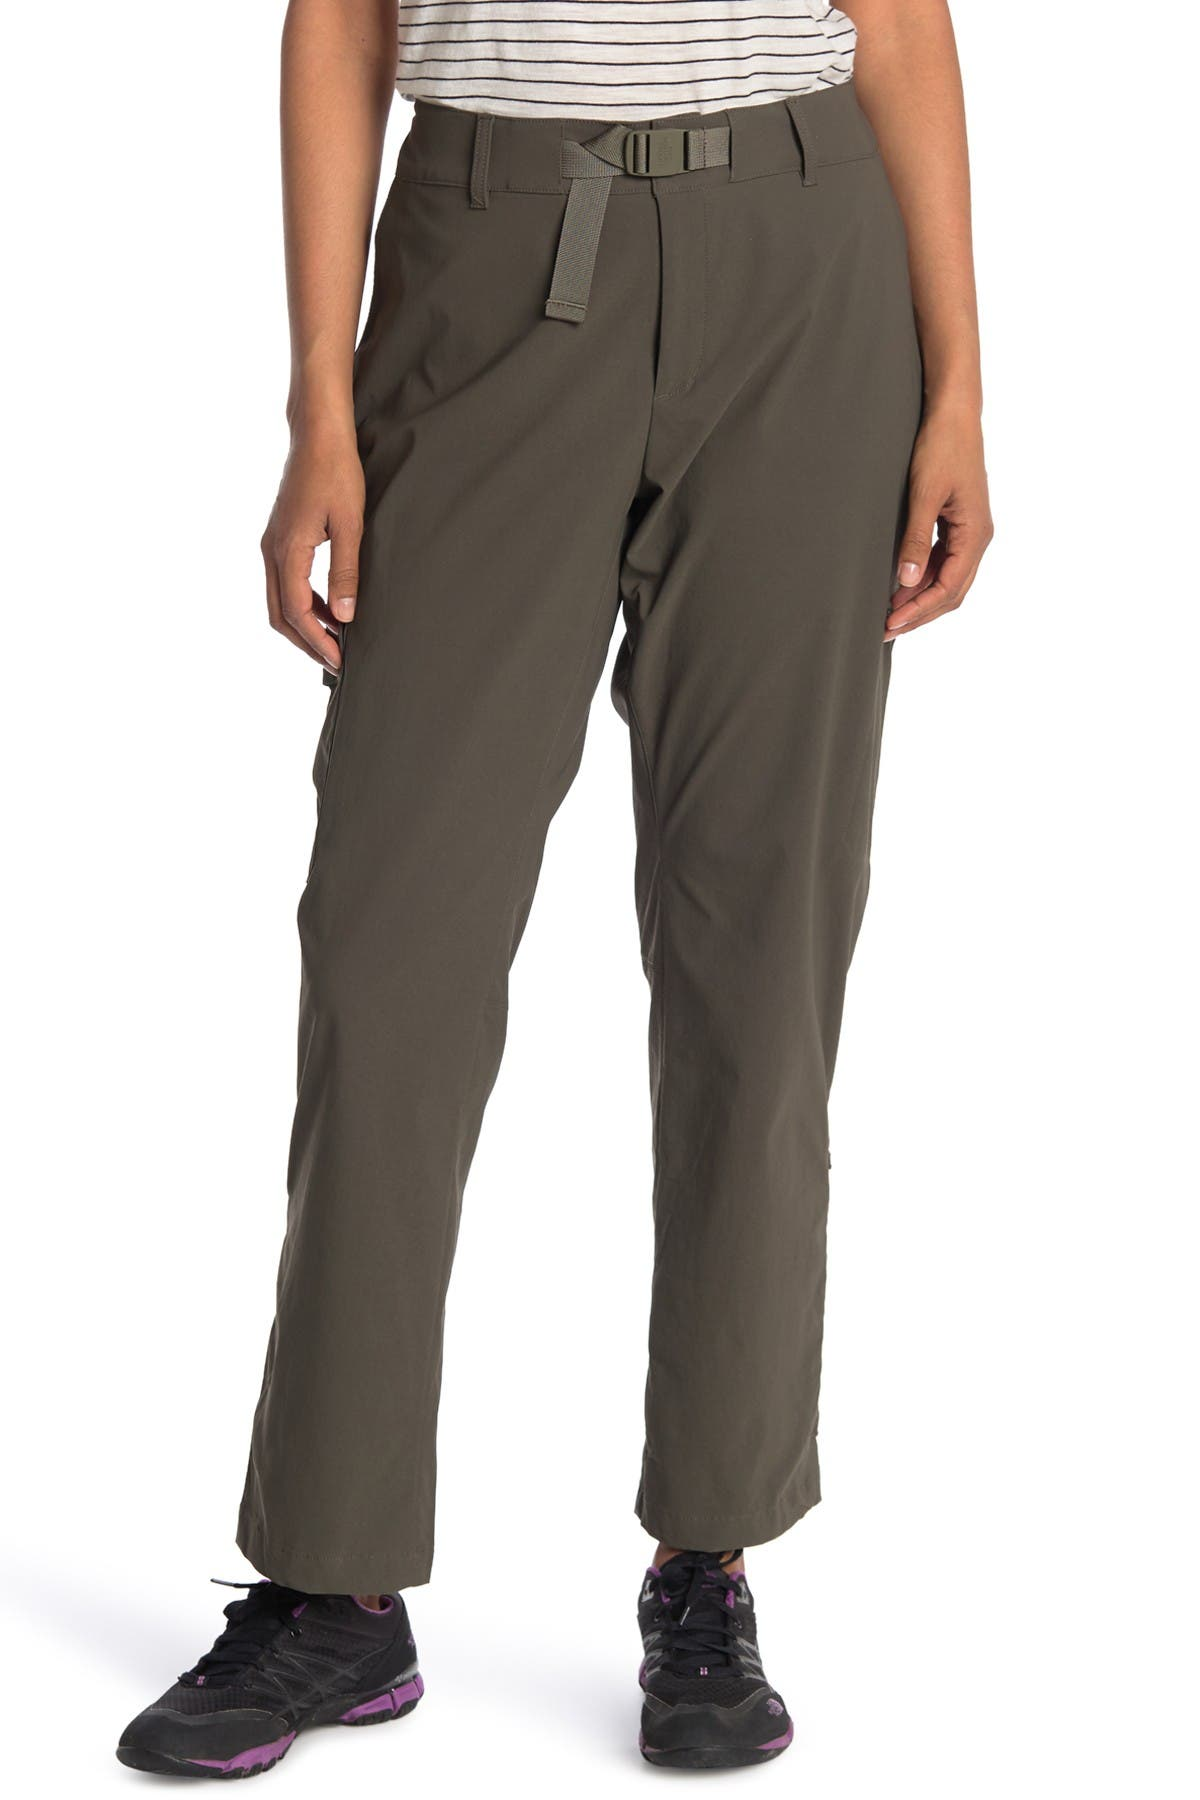 Image of The North Face Paramount Hiking Pants